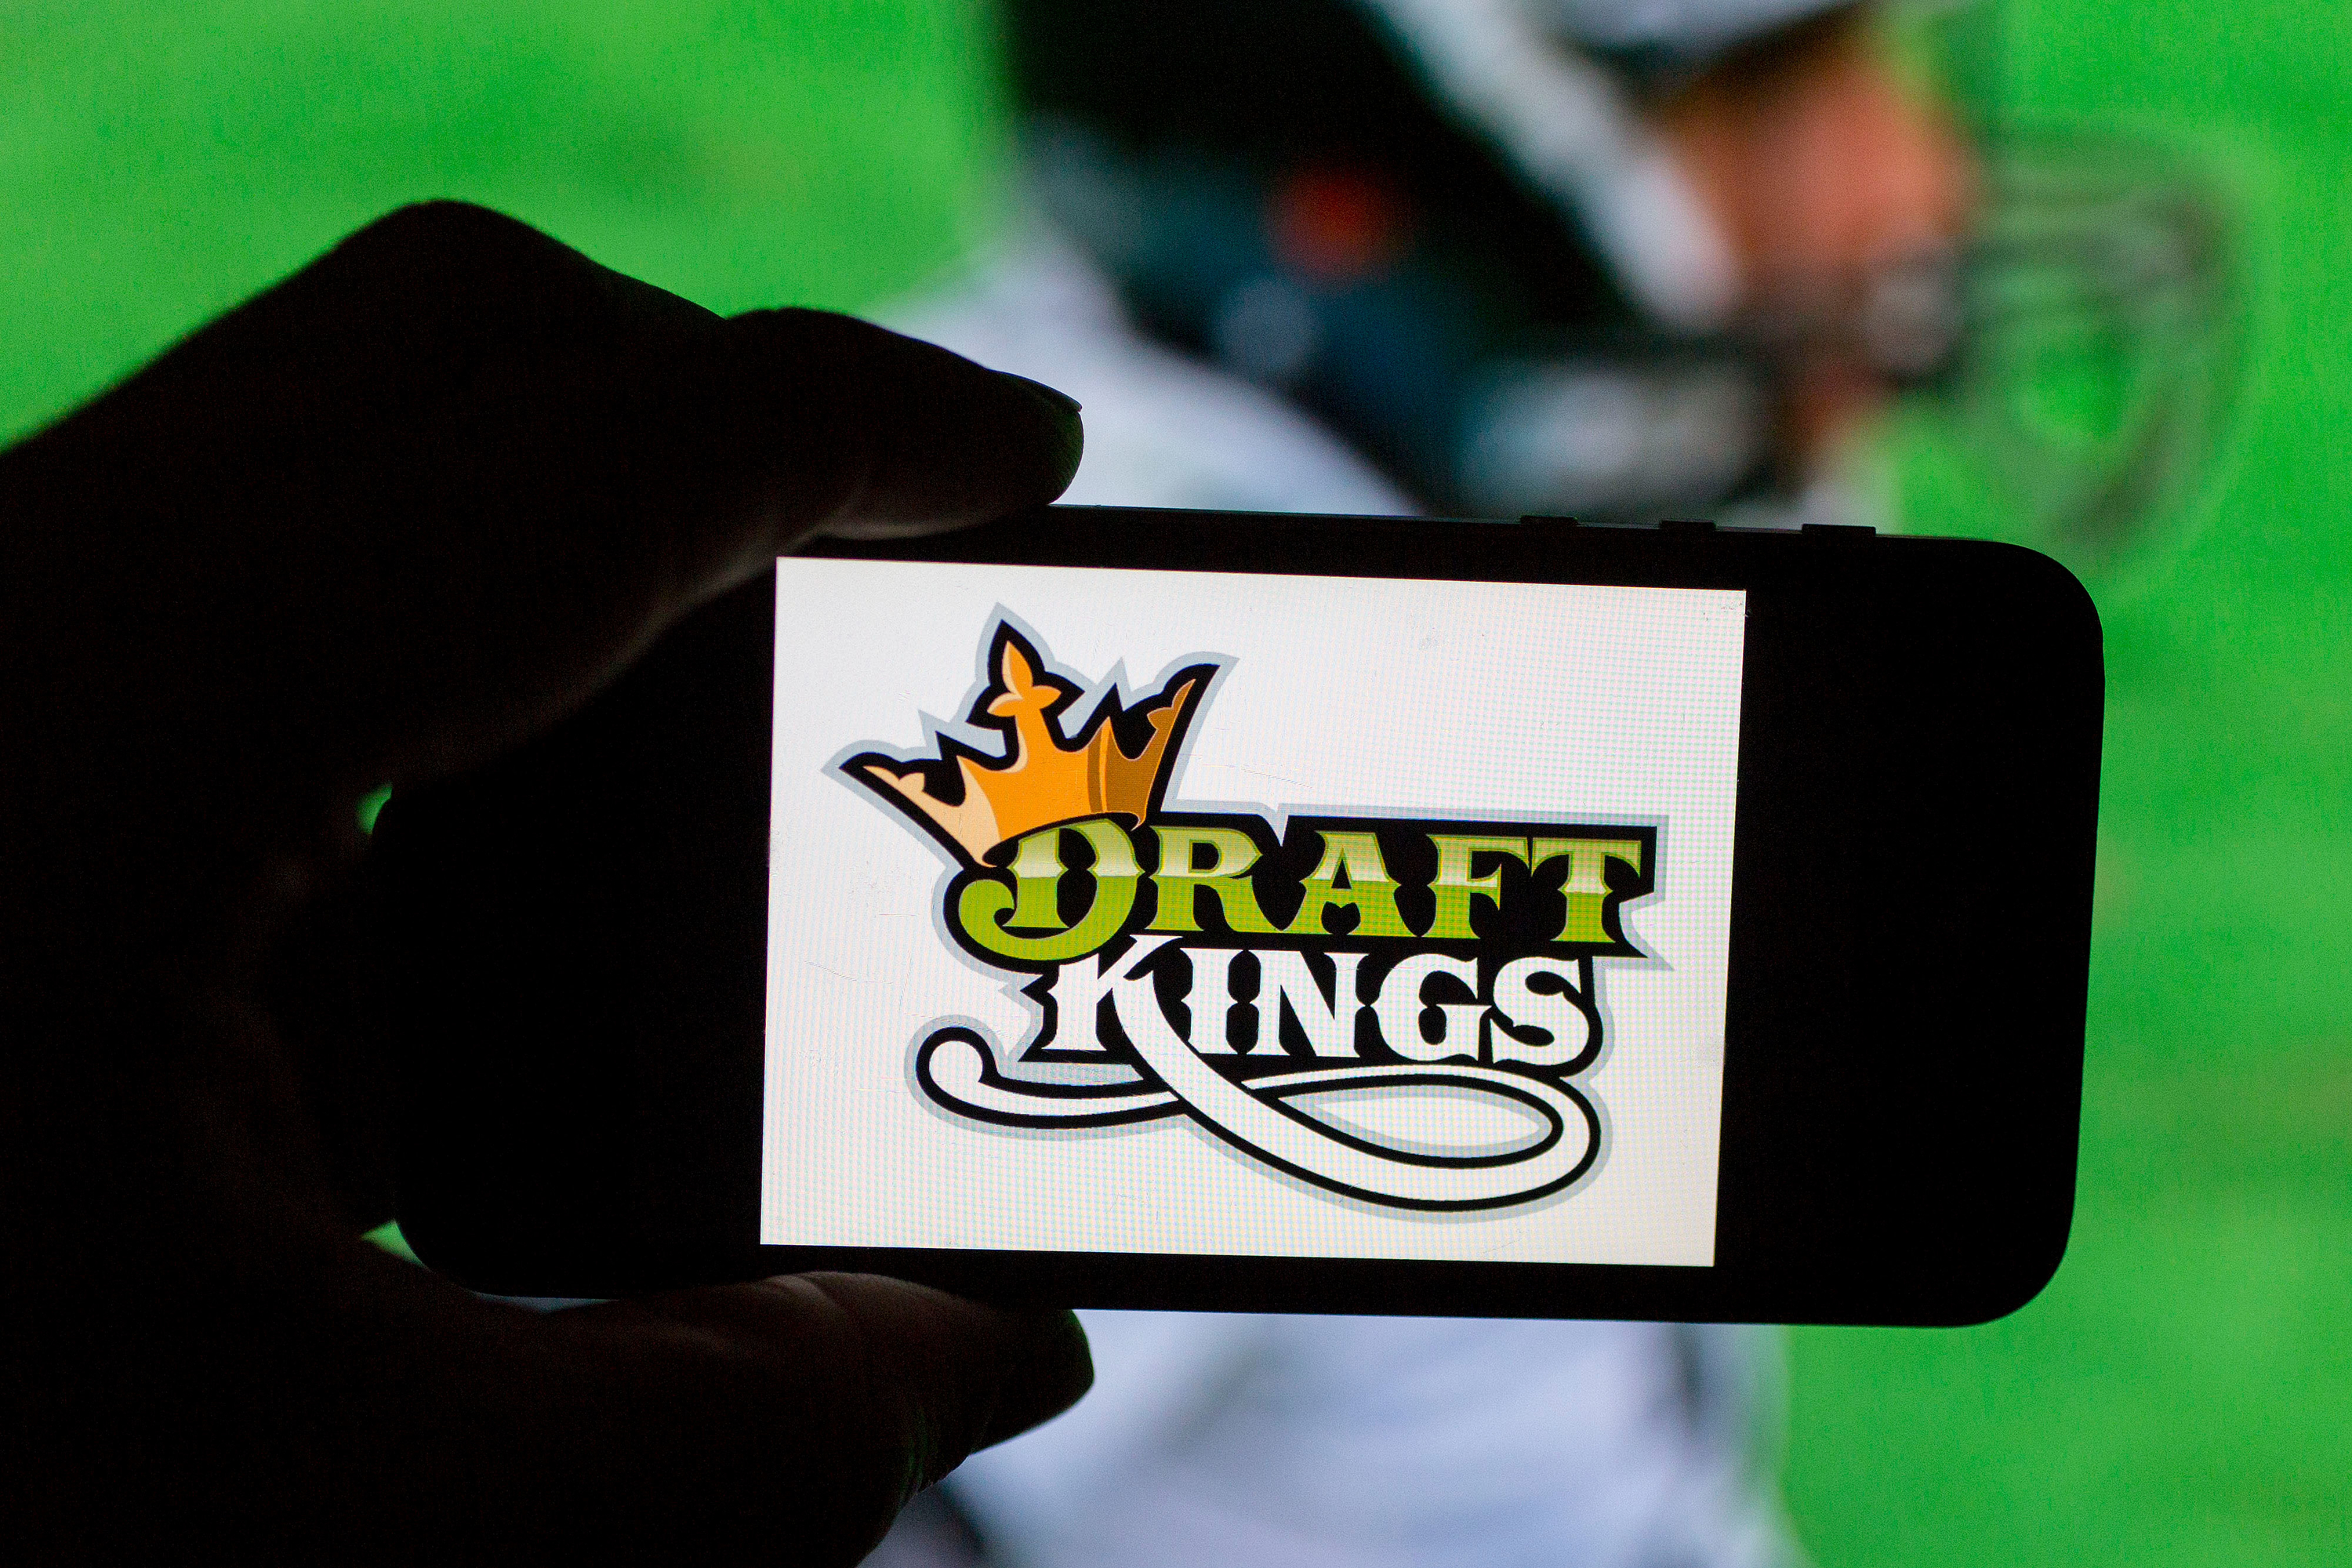 DraftKings inked a deal with the NFL on Thursday, allowing the company to use the league's branding in its marketing material.